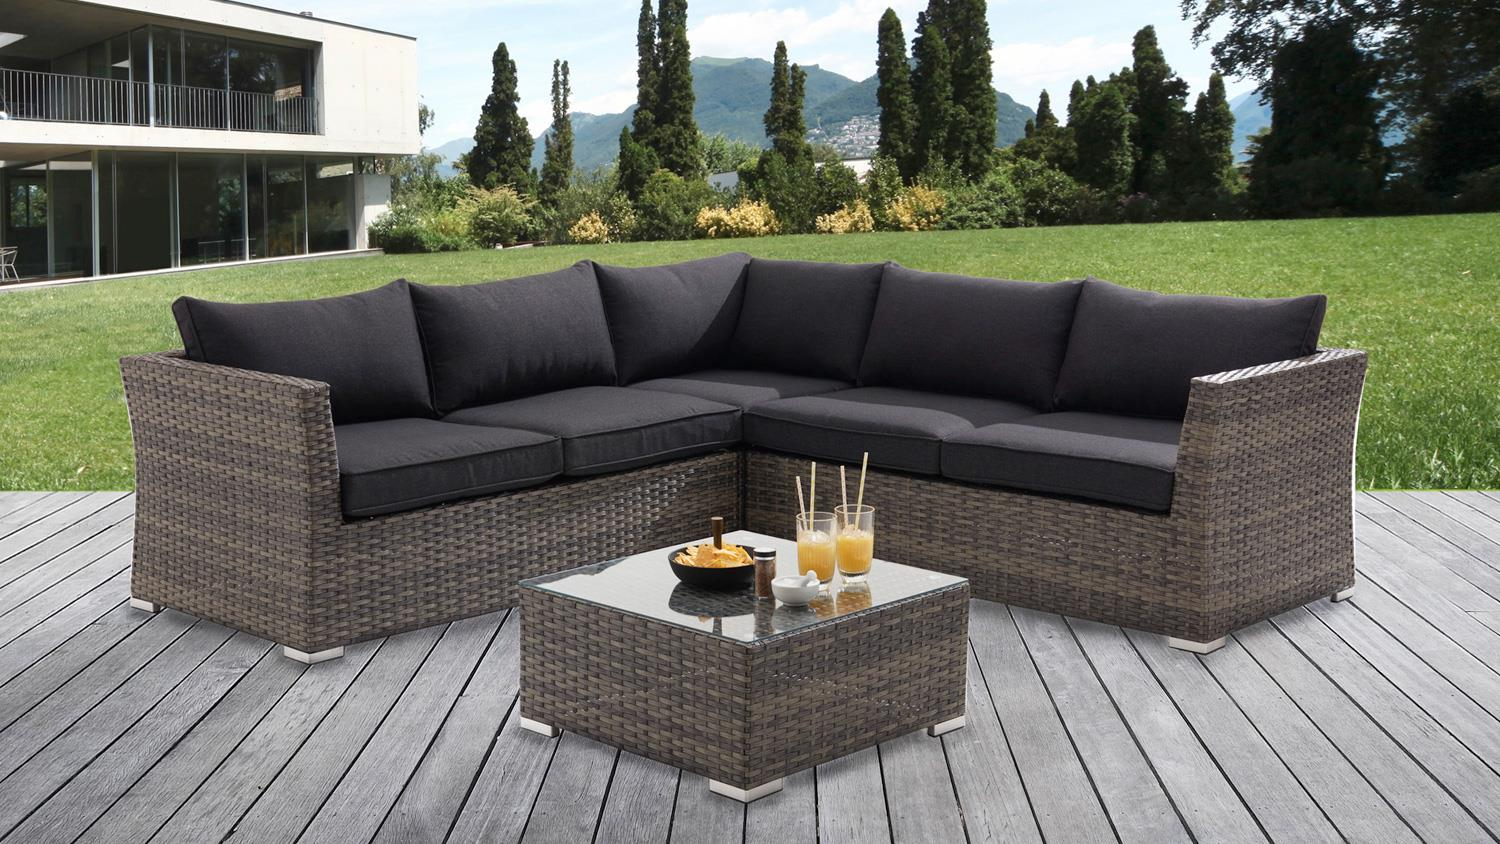 garten lounge ecksofa gartenm bel set polyrattan. Black Bedroom Furniture Sets. Home Design Ideas